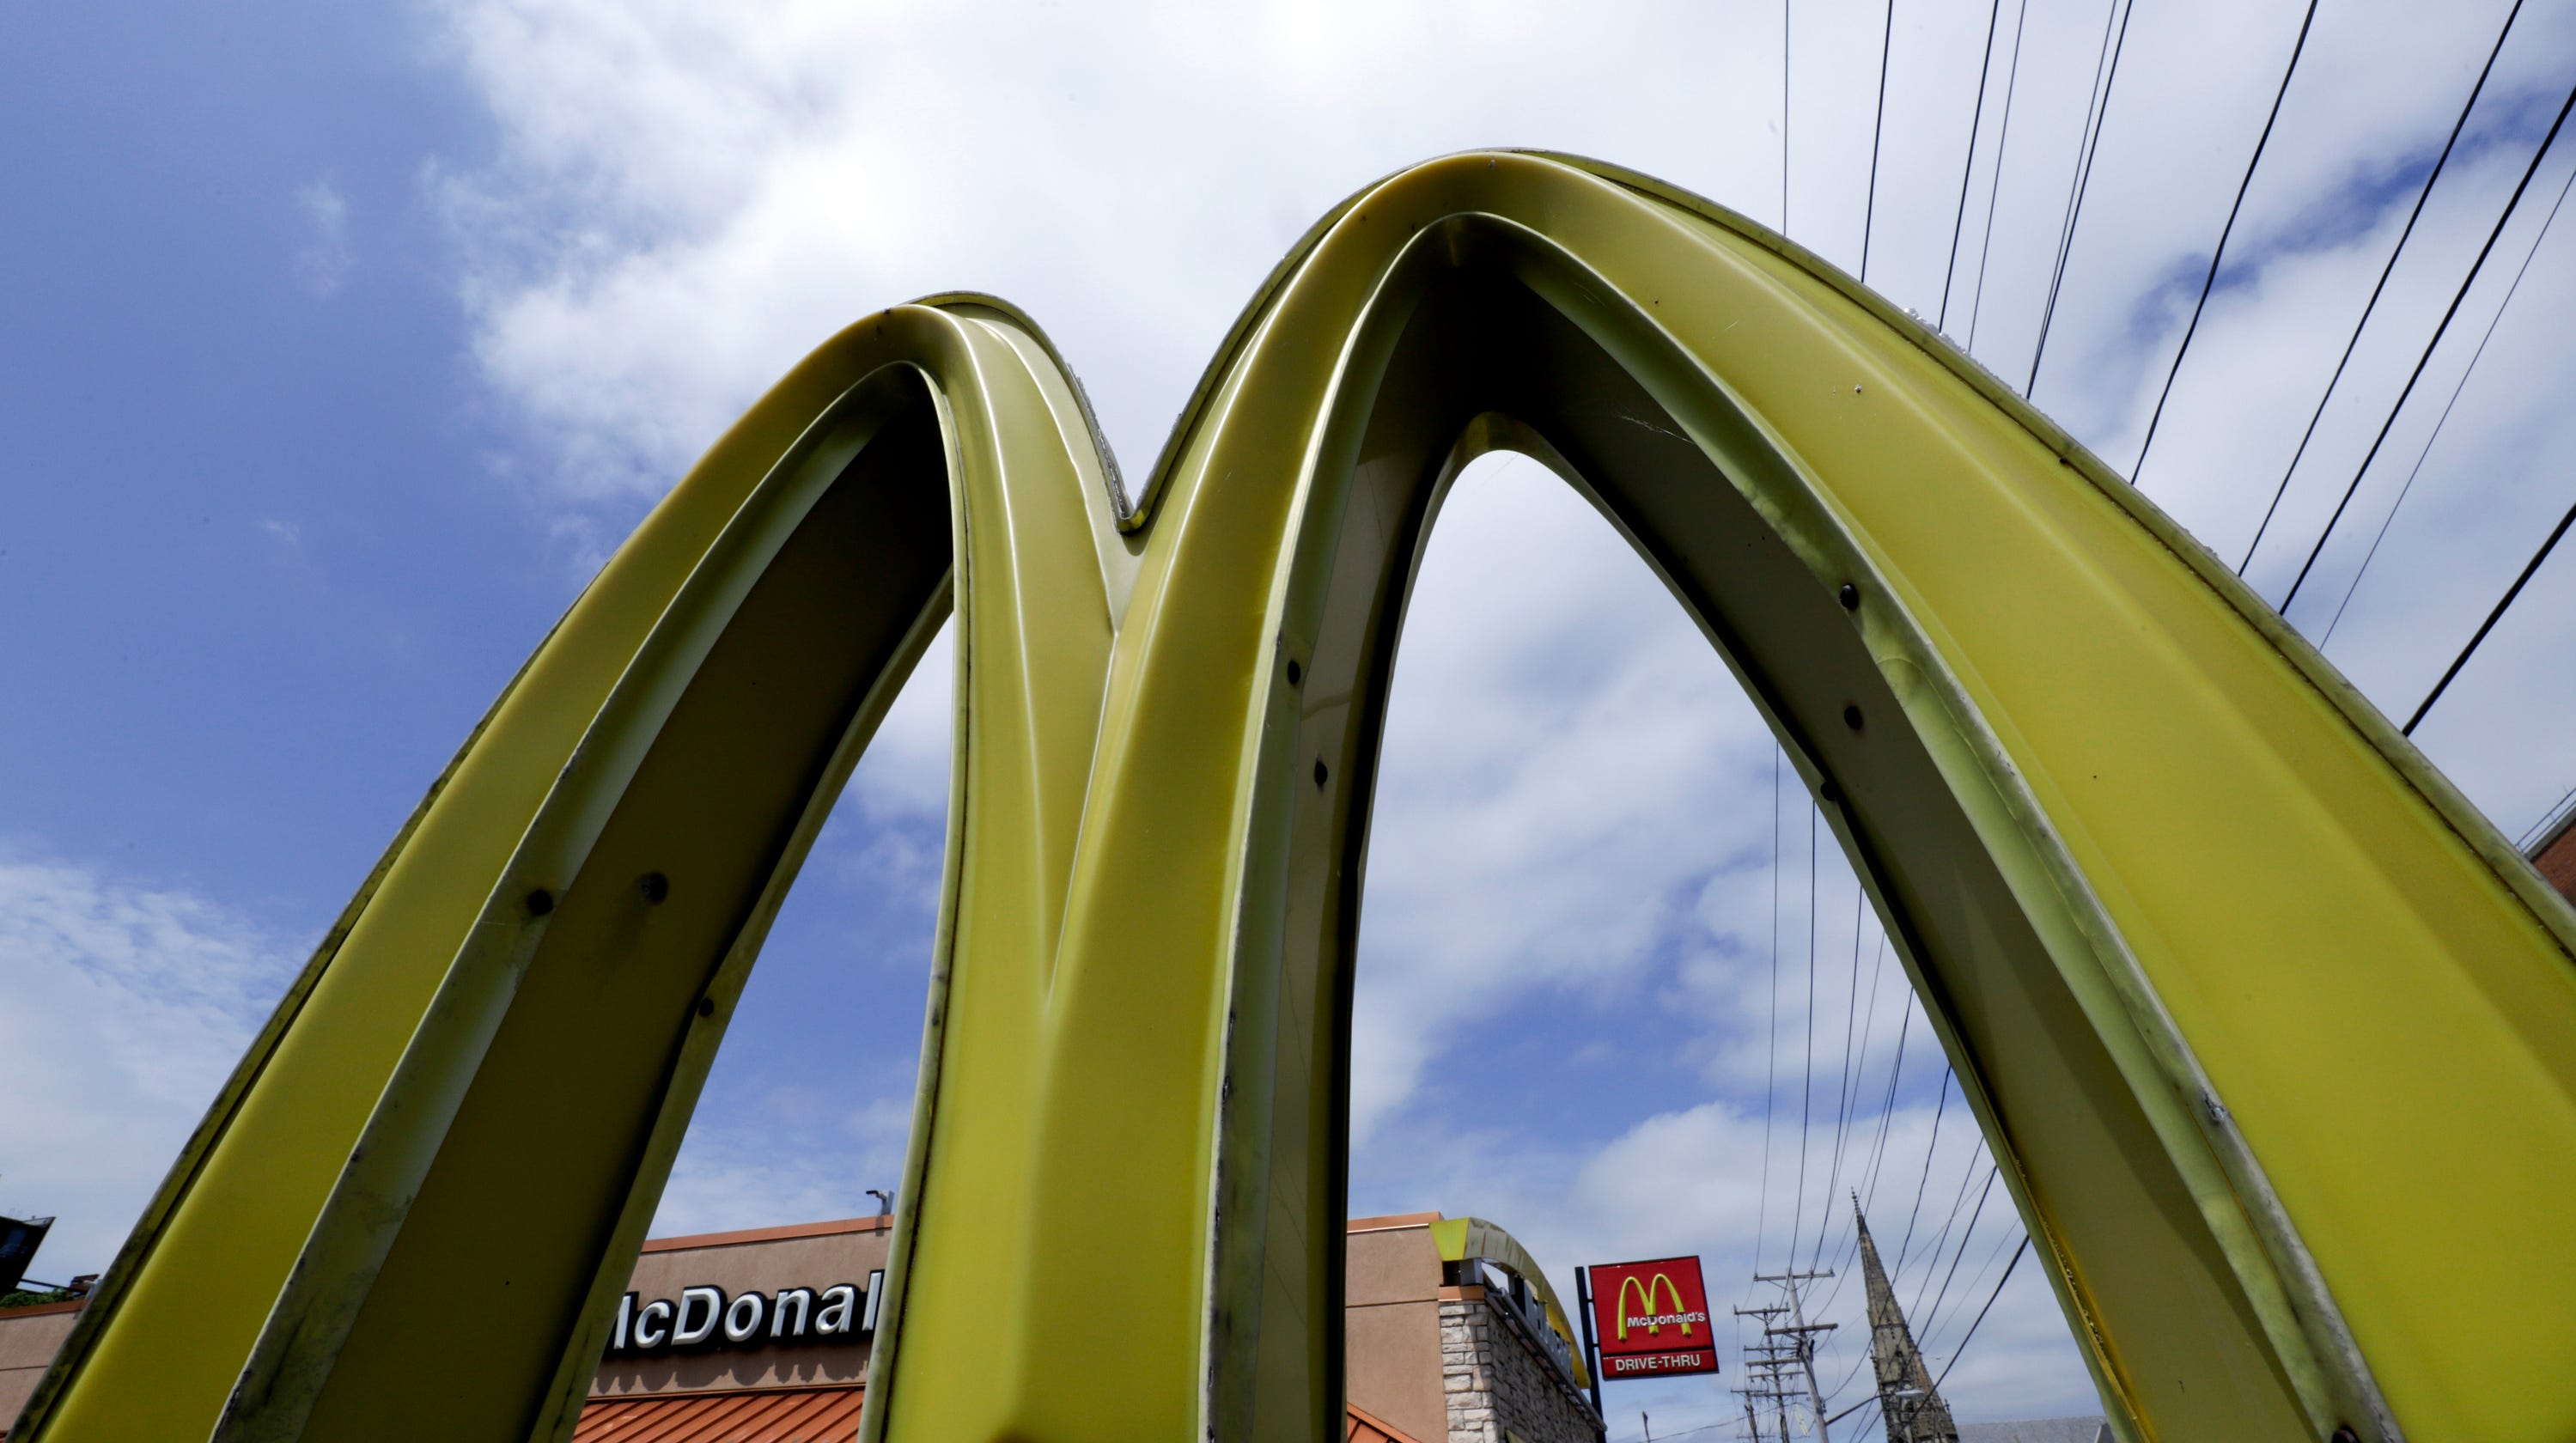 McDonald's in Austria will double as mini U.S. embassies for tourists in need of help